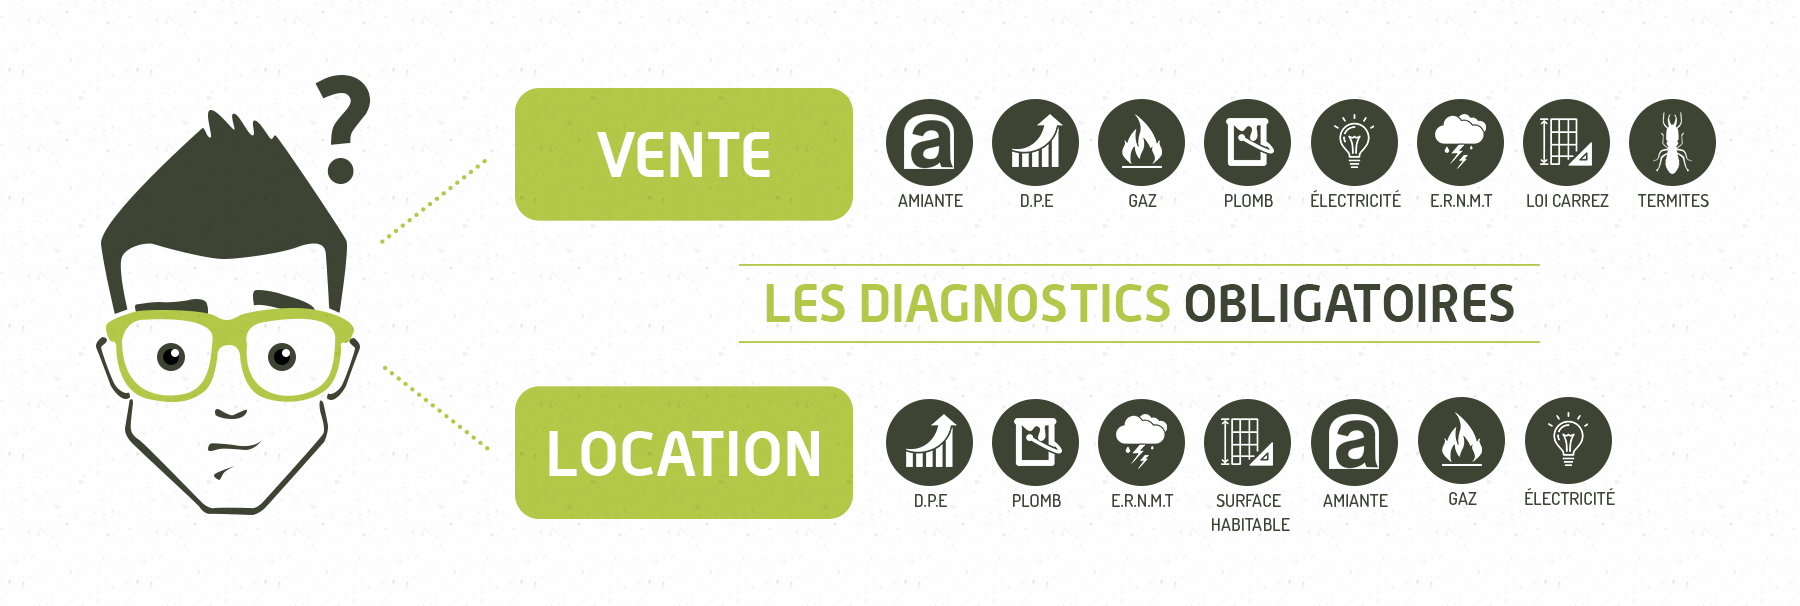 diagnostic immobilier indre